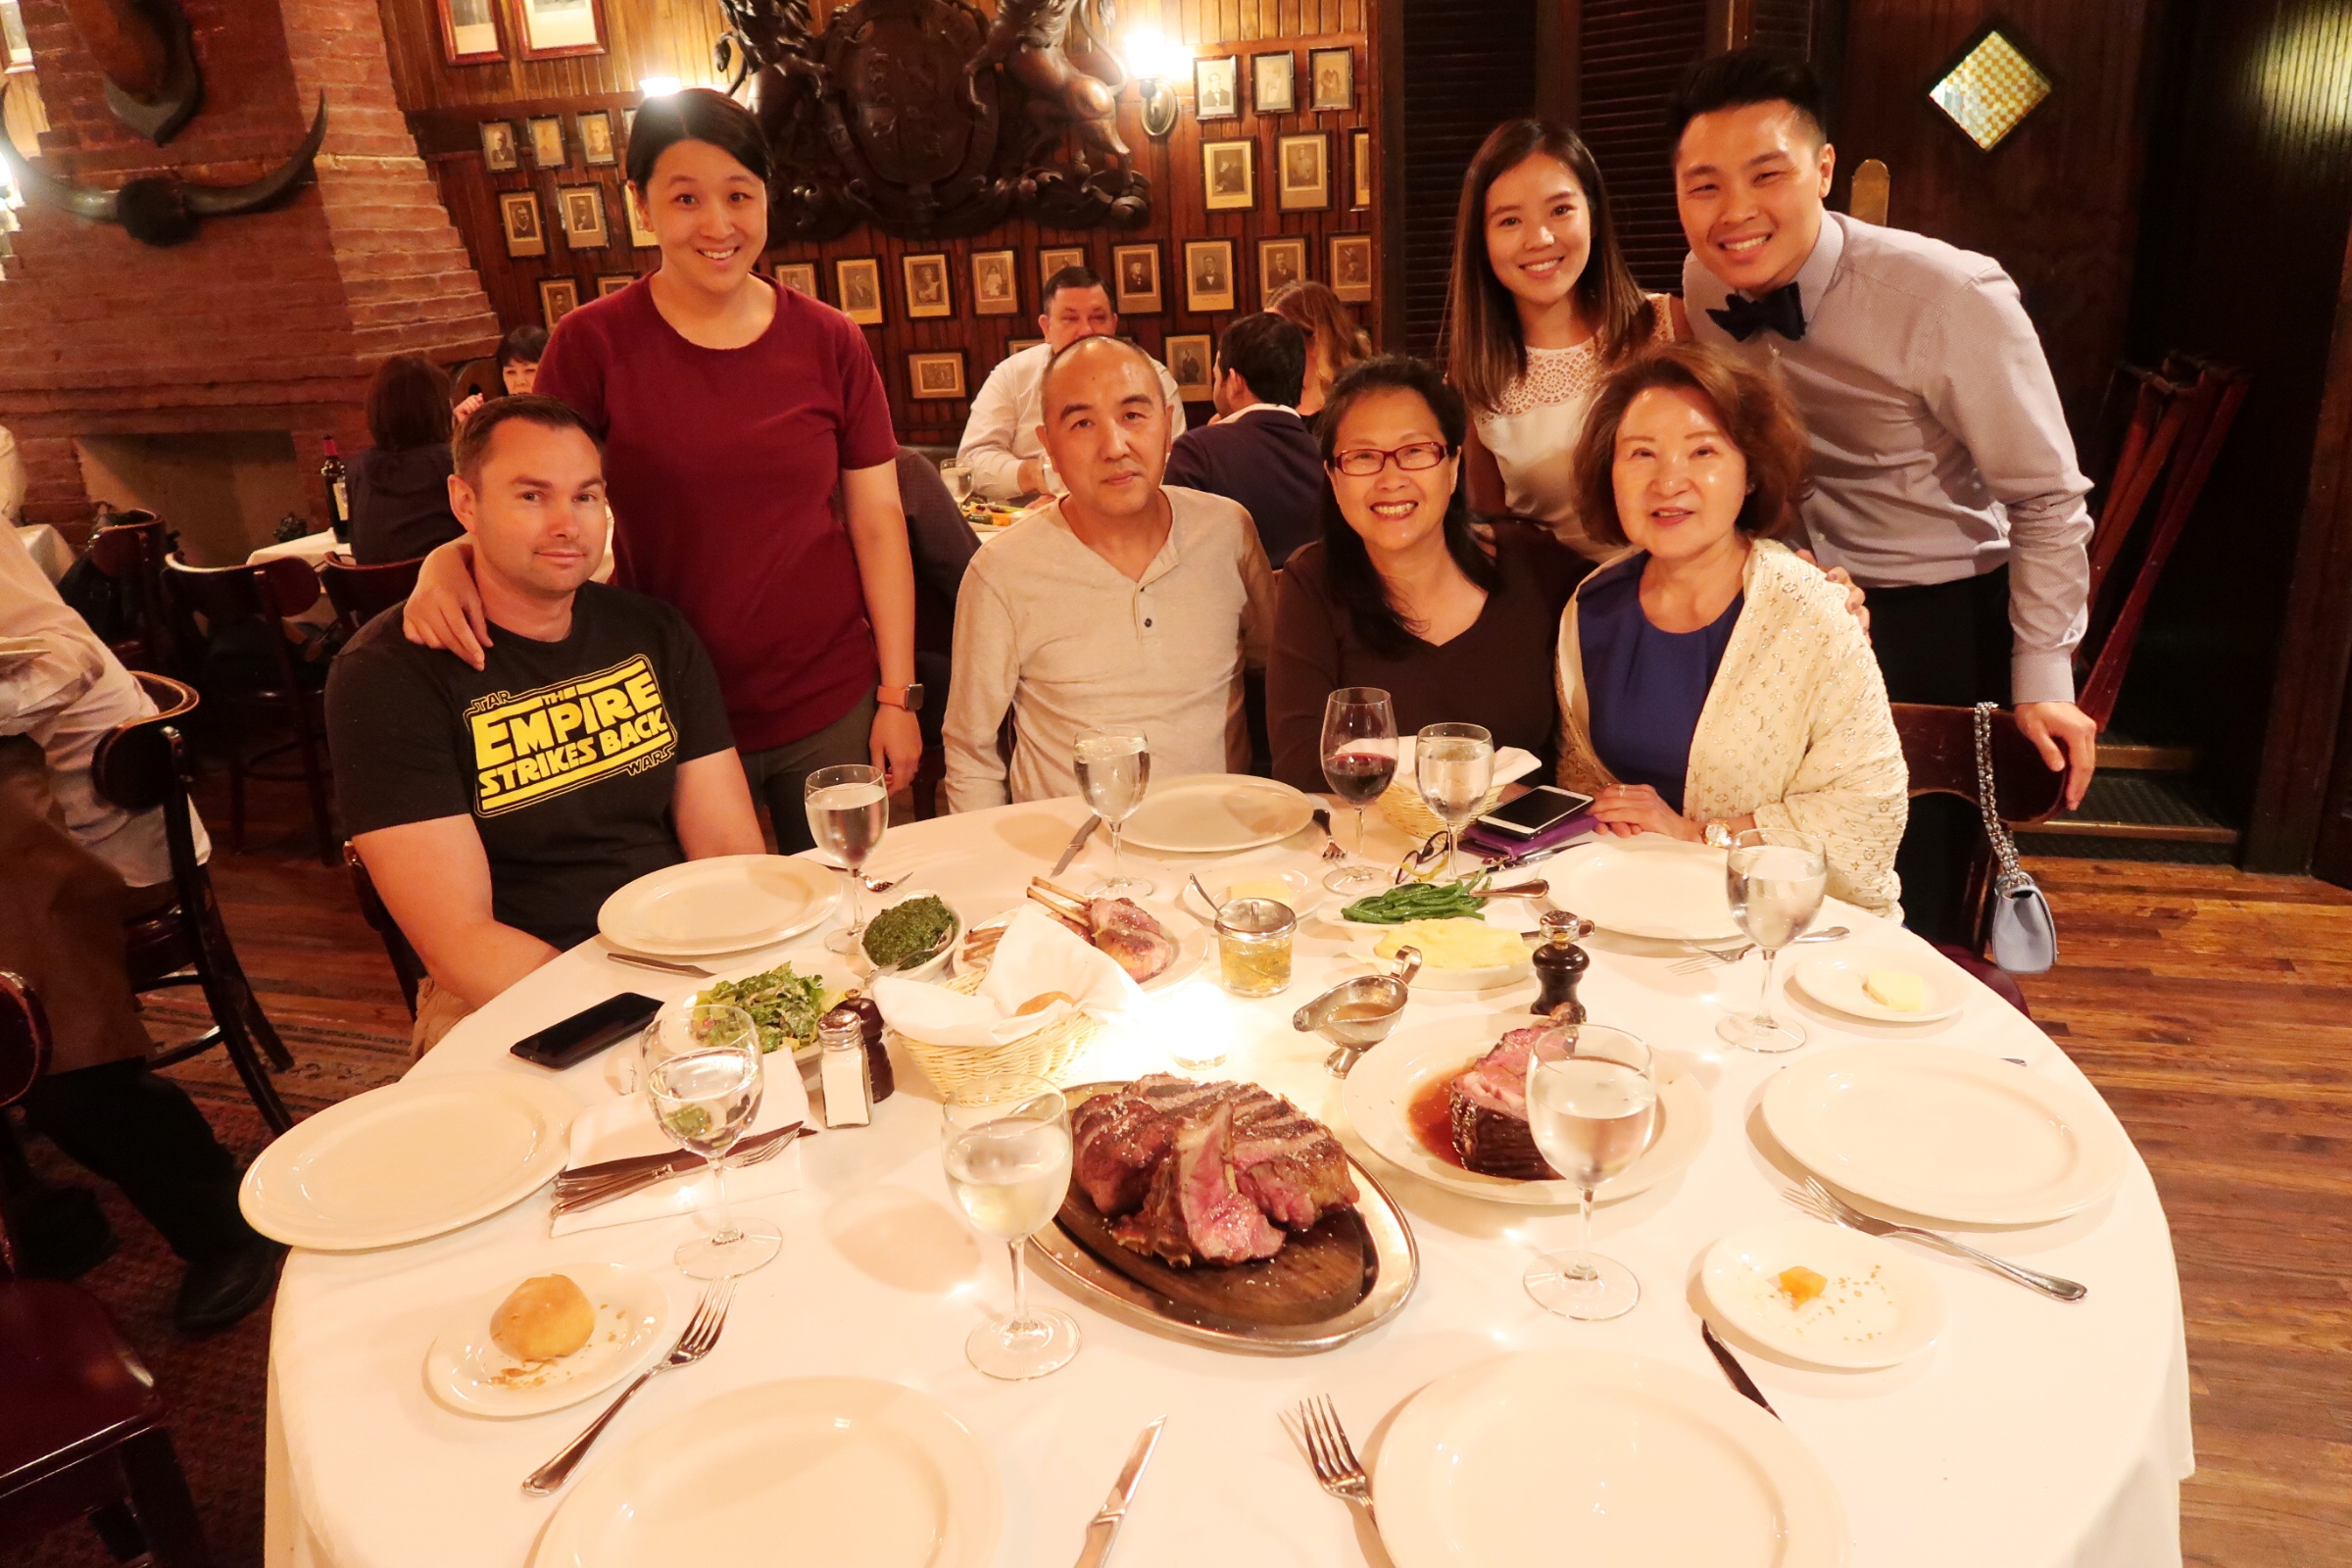 Dinner celebration at Keens Steakhouse